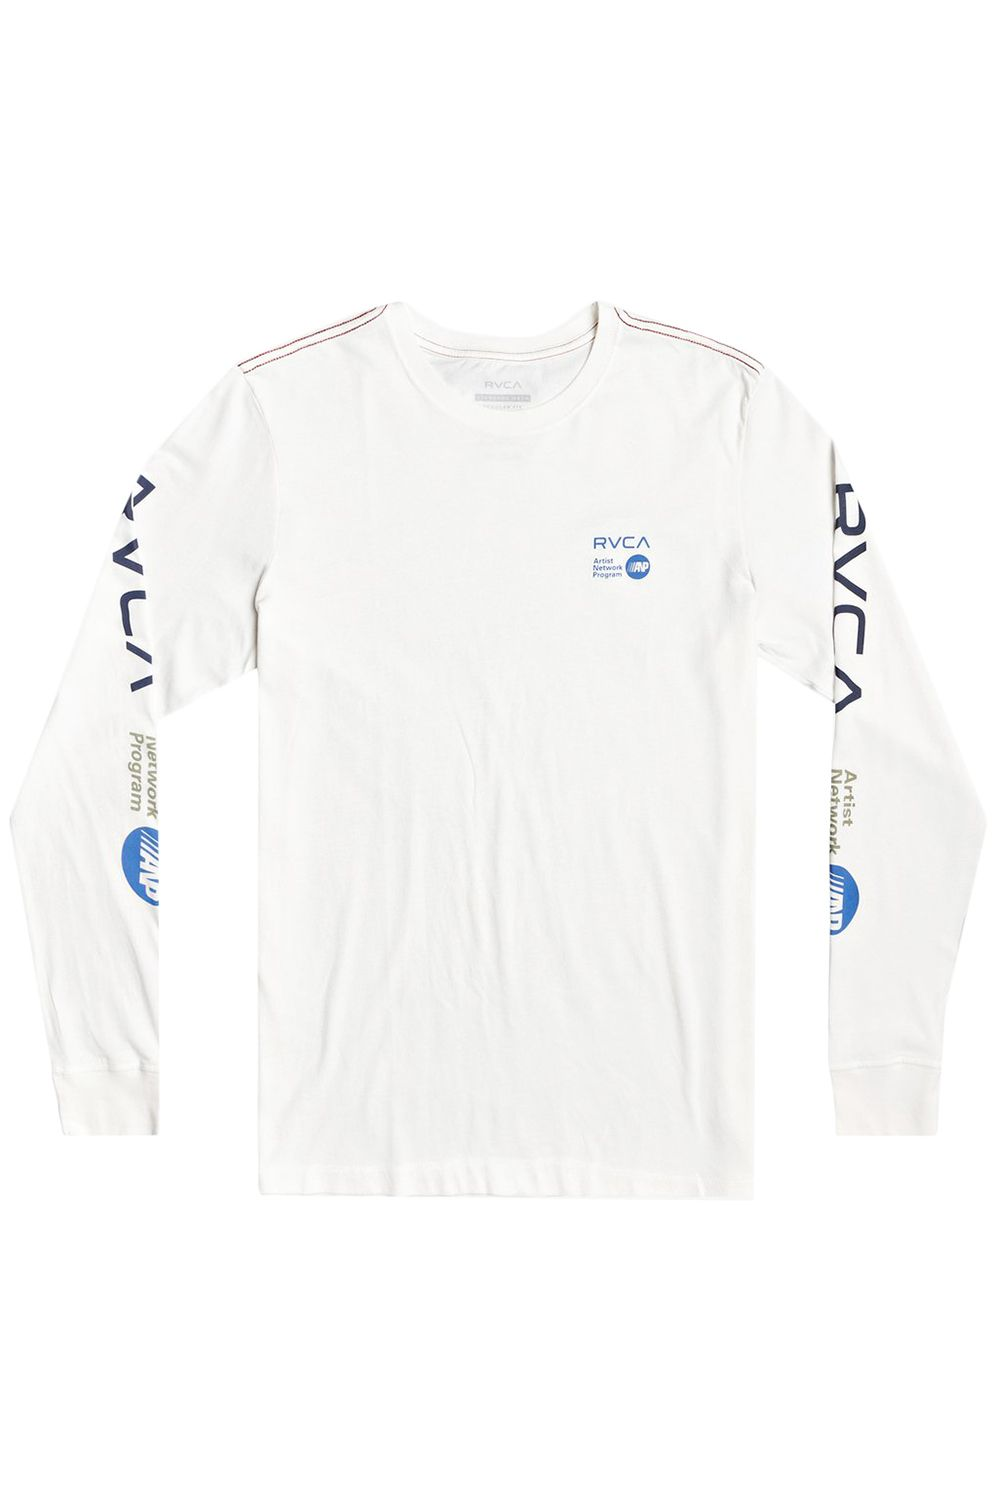 L-Sleeve RVCA ANP LONG SLEEVE White/Blue